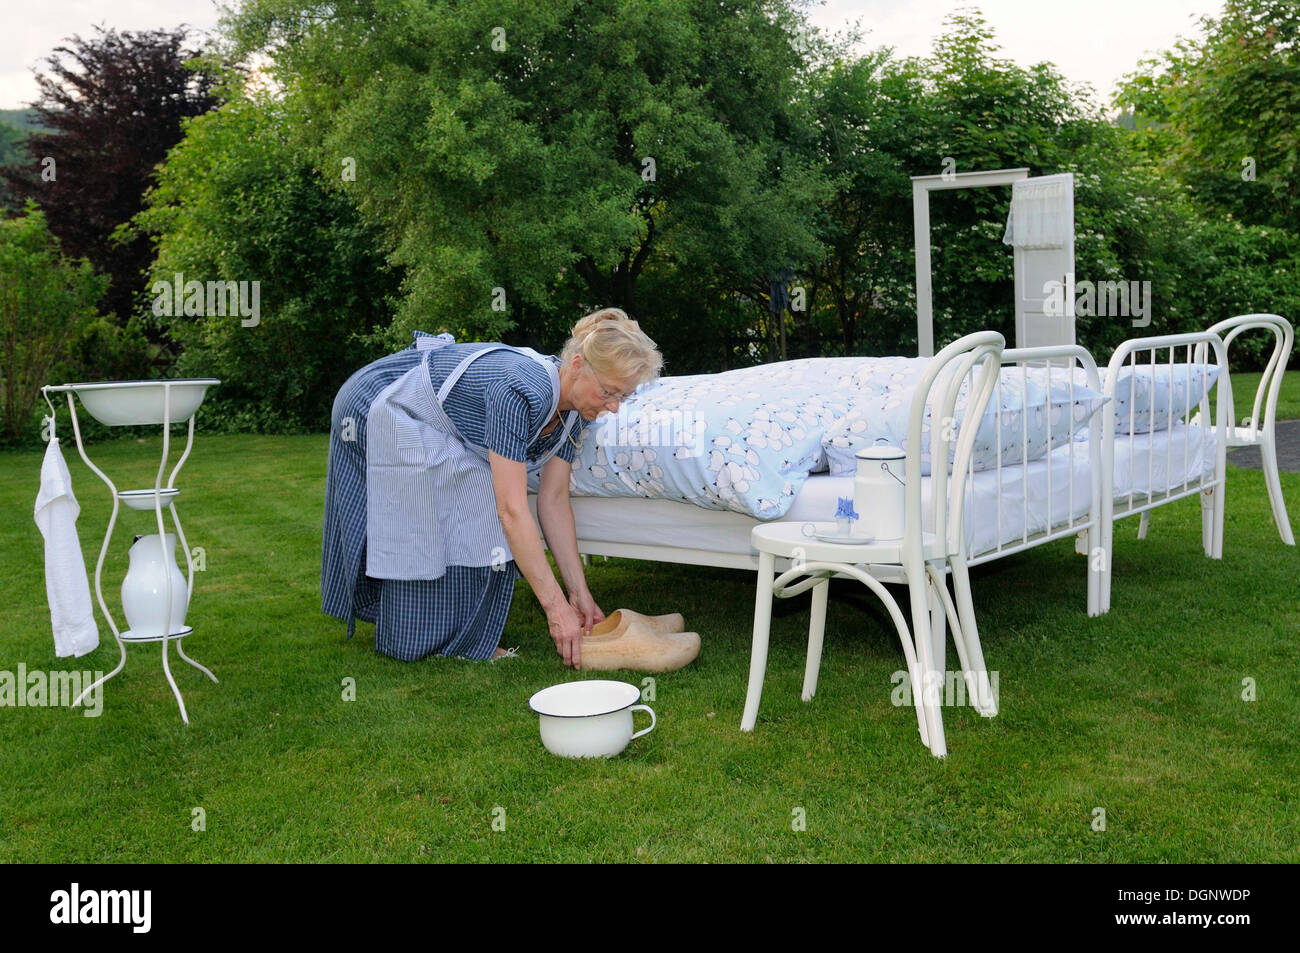 Clogs and chamber pot, preparing of traditional beds for boarders, Wittgenstein poster bed, Crazy Hotels, Pension Kamerichs inn - Stock Image